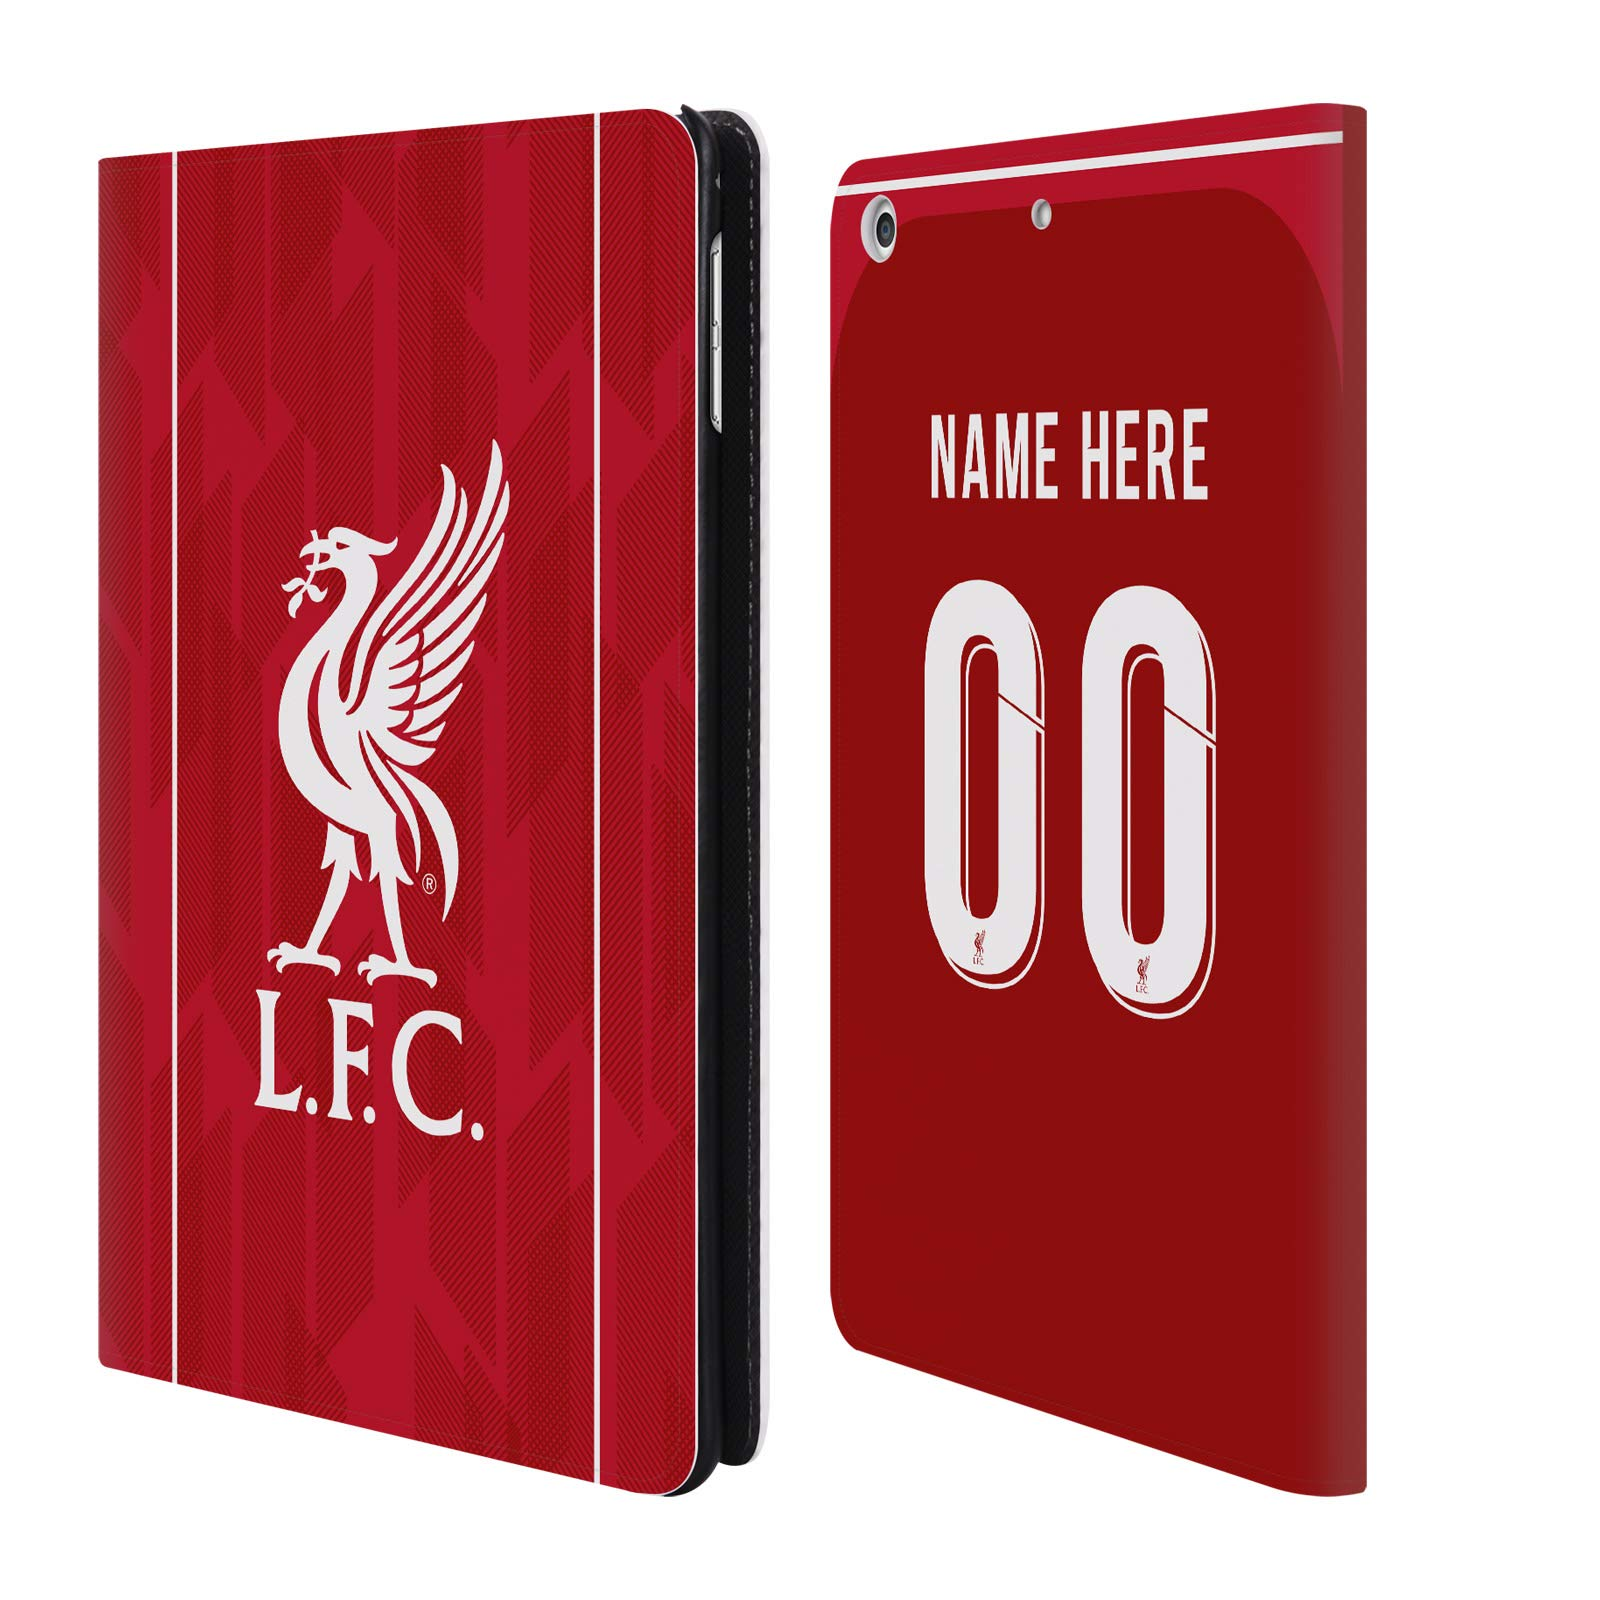 Custom Customized Personalized Liverpool Football Club Home Kit 2018/19 PU Leather Book Wallet Case Cover for iPad Mini 4